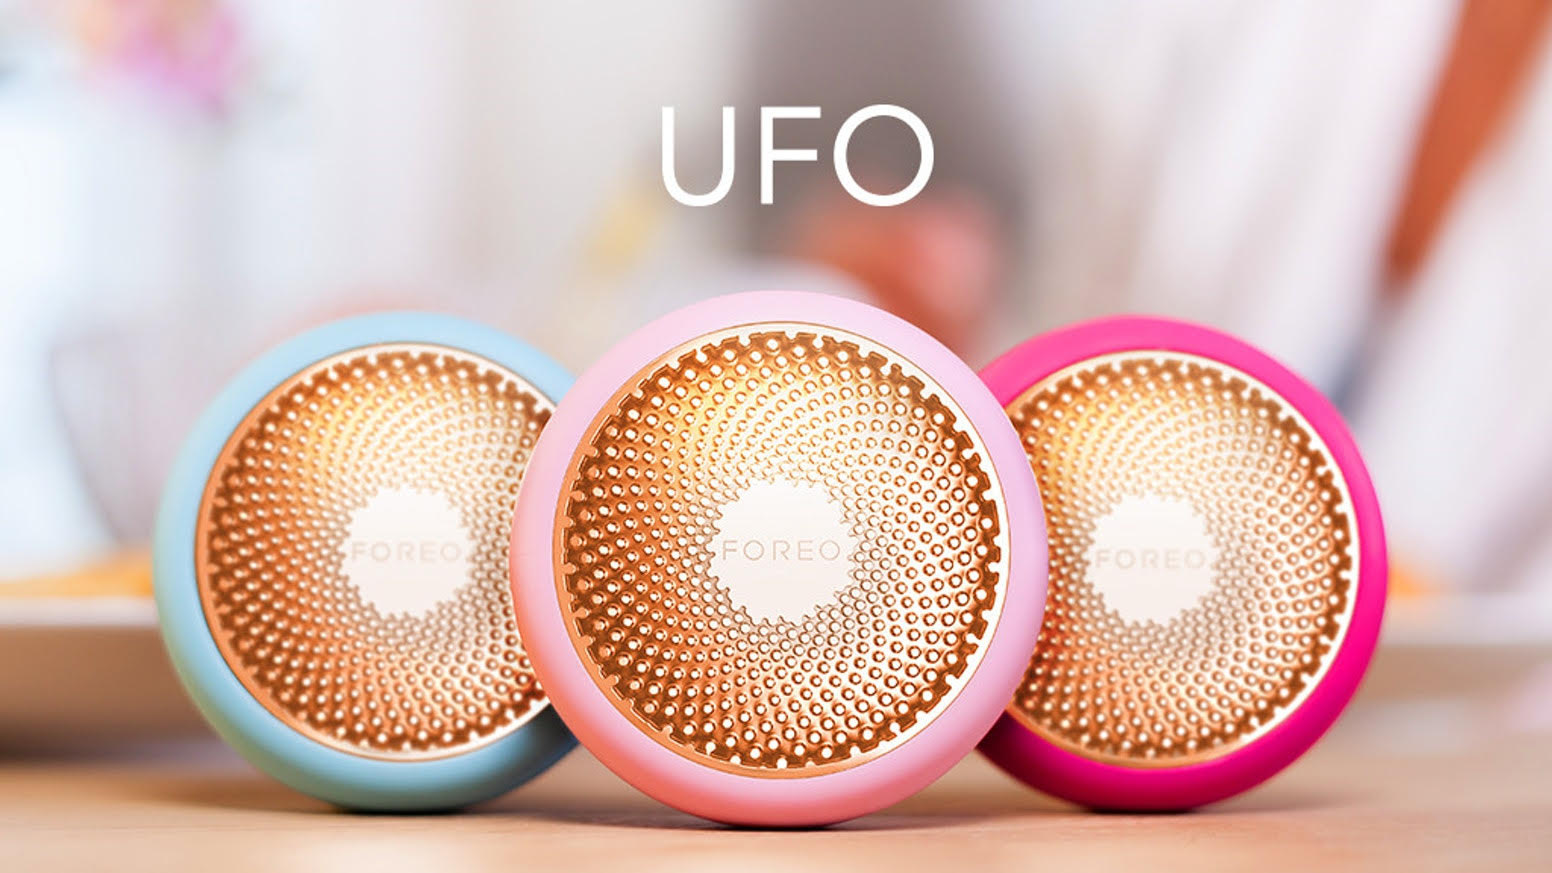 UFO by FOREO